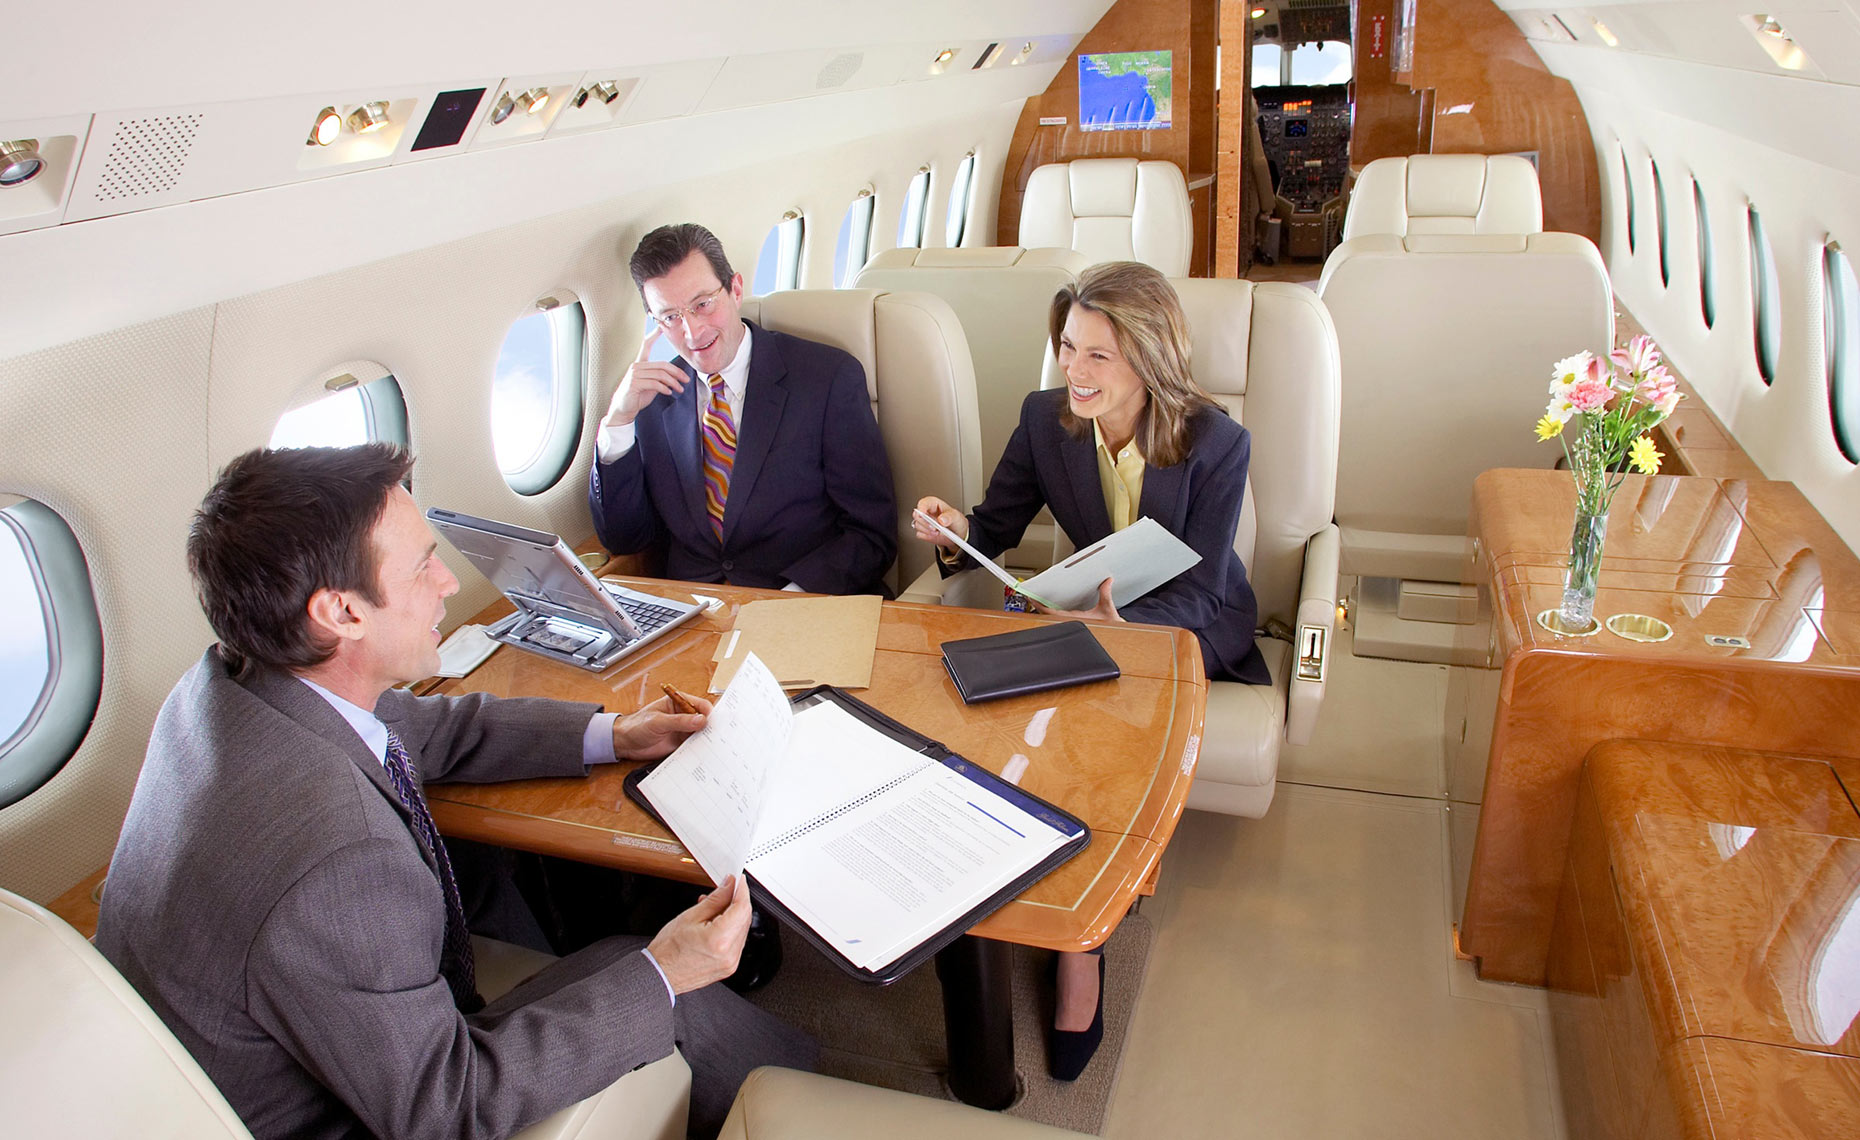 JetChoise/execs/interior of luxurious private jet/lifestyle photography